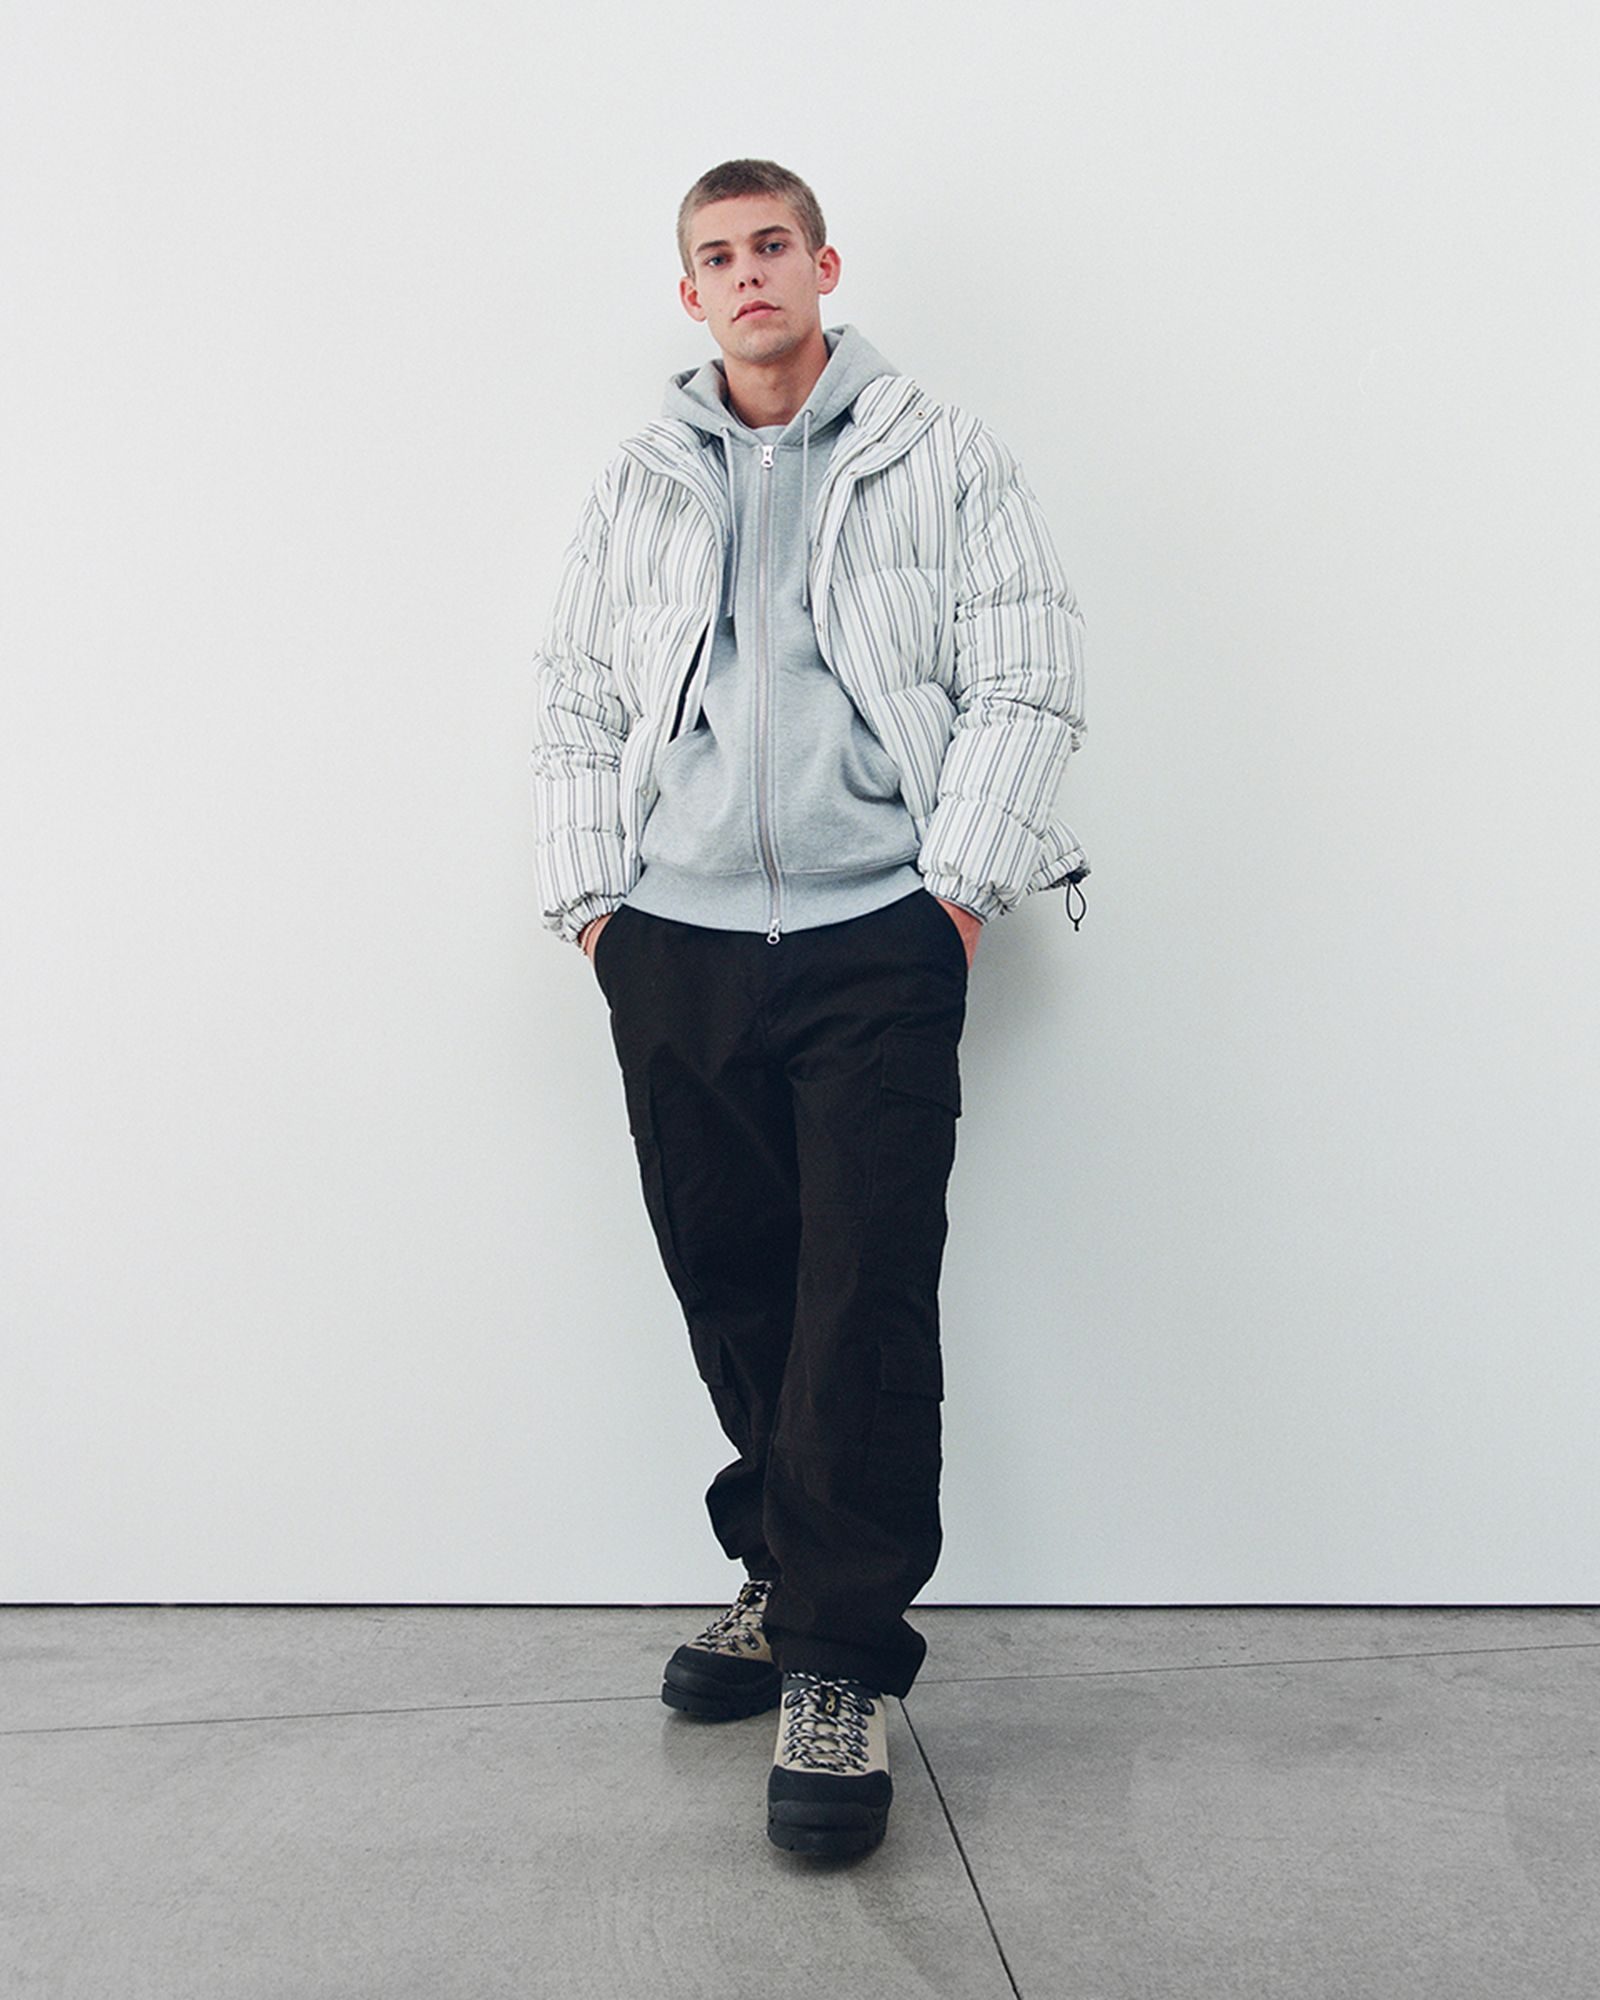 Stussy fall 2021 collection lookbook (21)